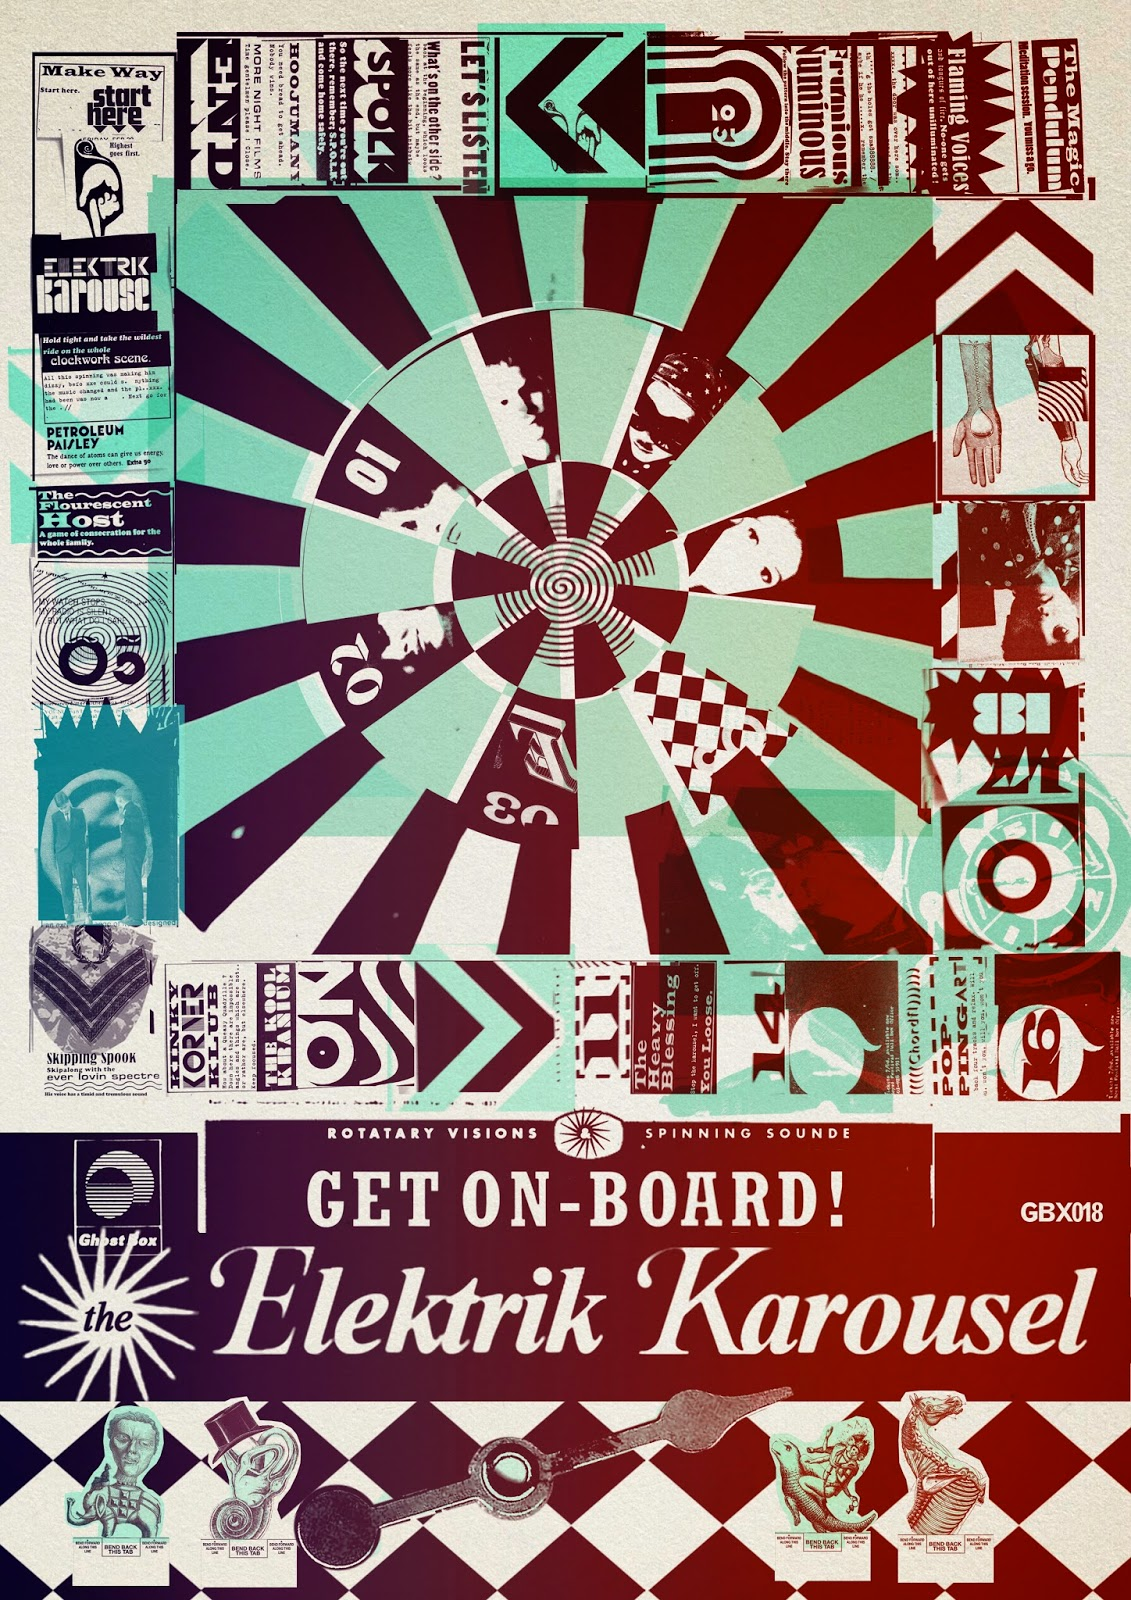 http://www.ghostbox.co.uk/http://www.ghostbox.co.uk/content/art%20and%20flyers/poster01_elektrik_karousel.jpg